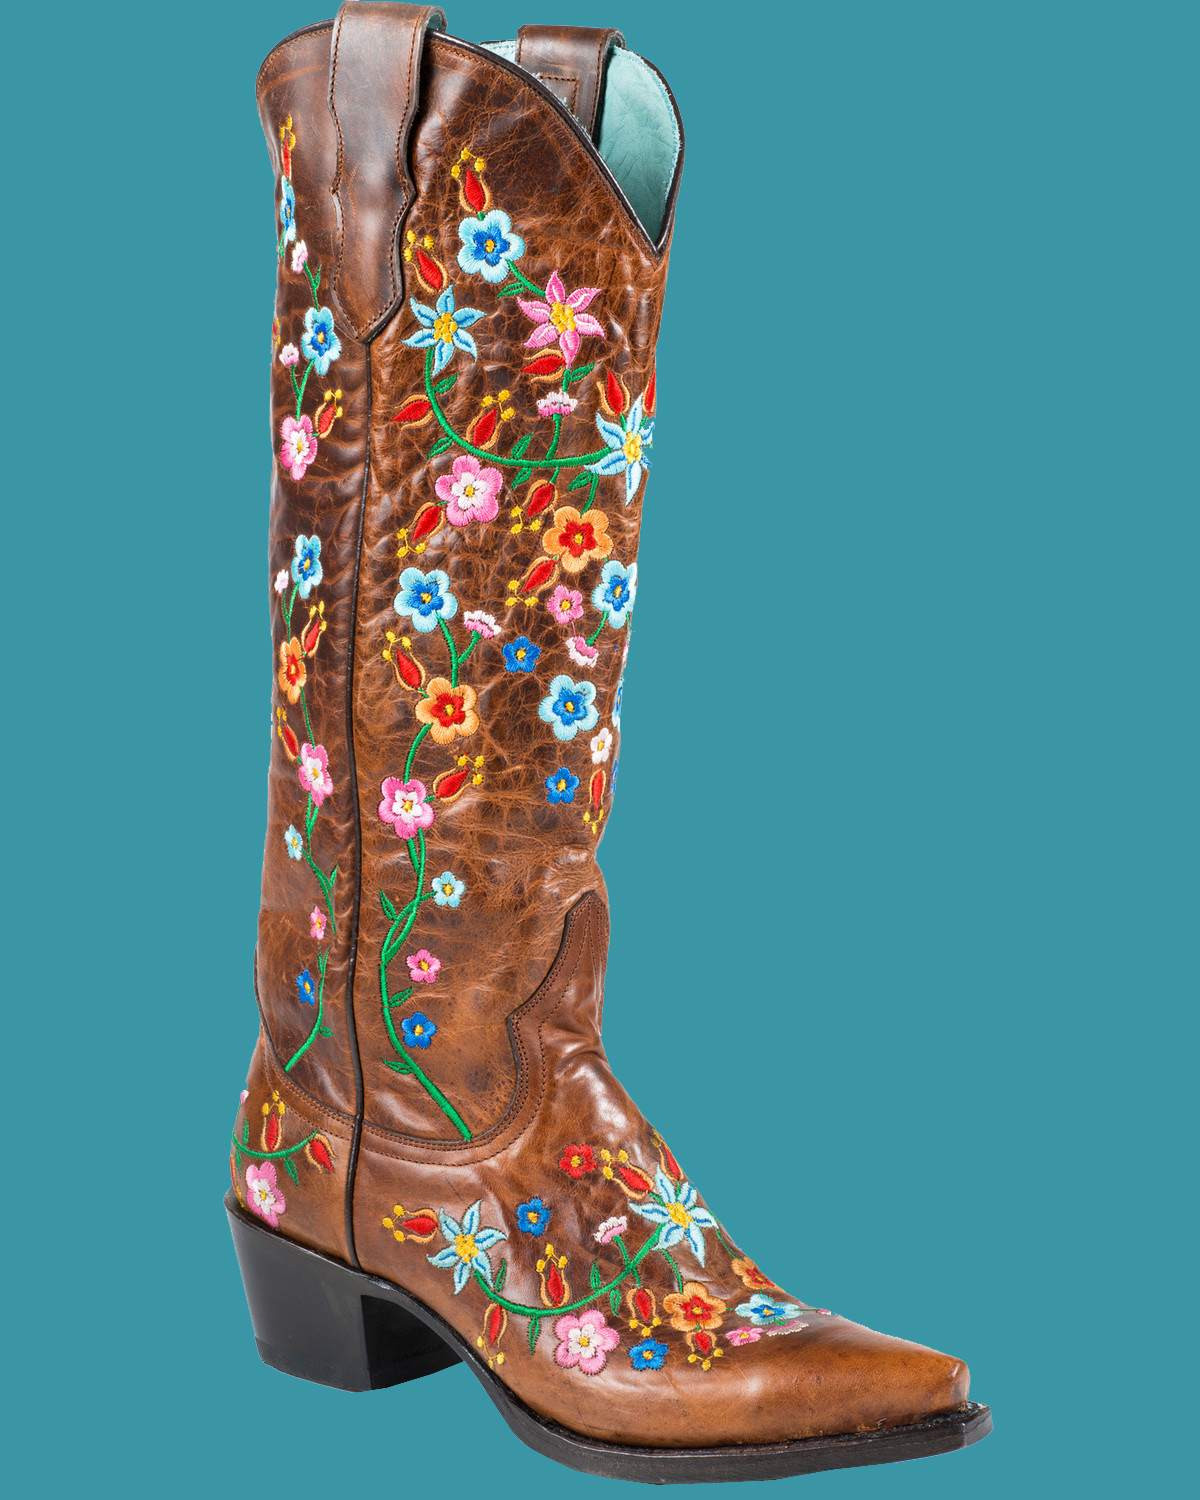 3f88d383852 Stetson Women's Flora Embroidered Western Cowboy Boots